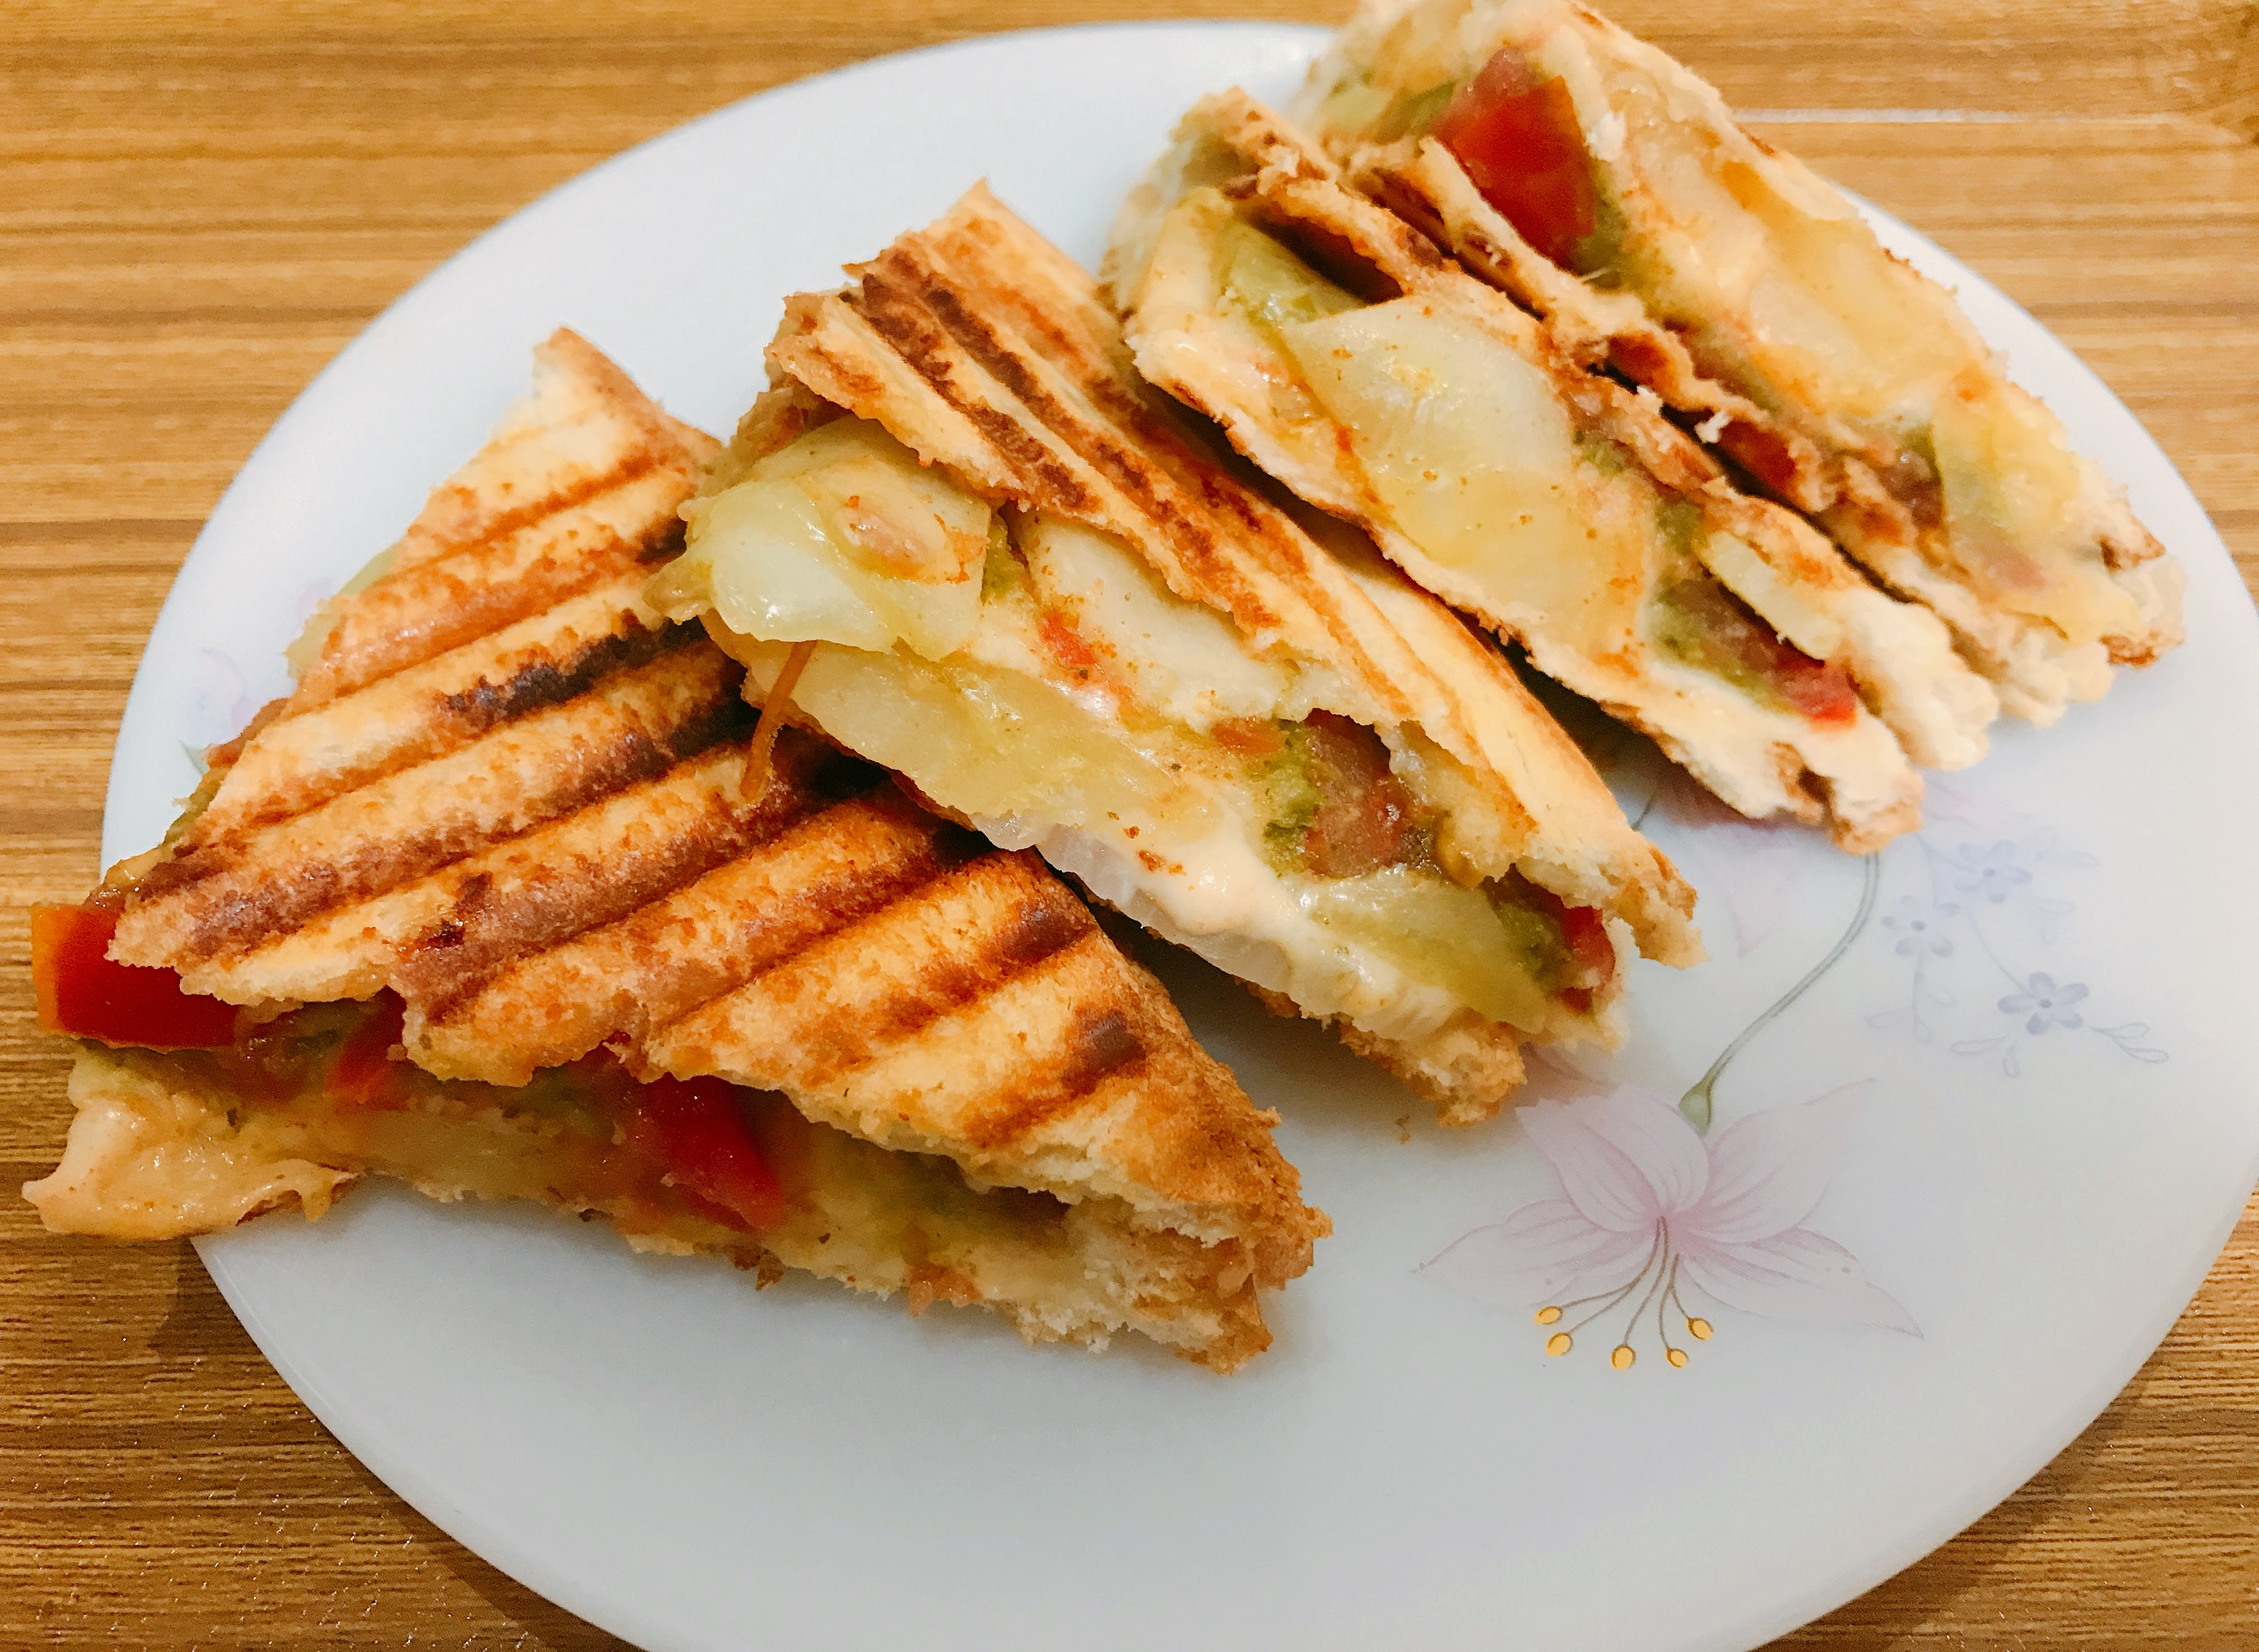 Vegetable Grilled Sandwich Your Veg Recipe